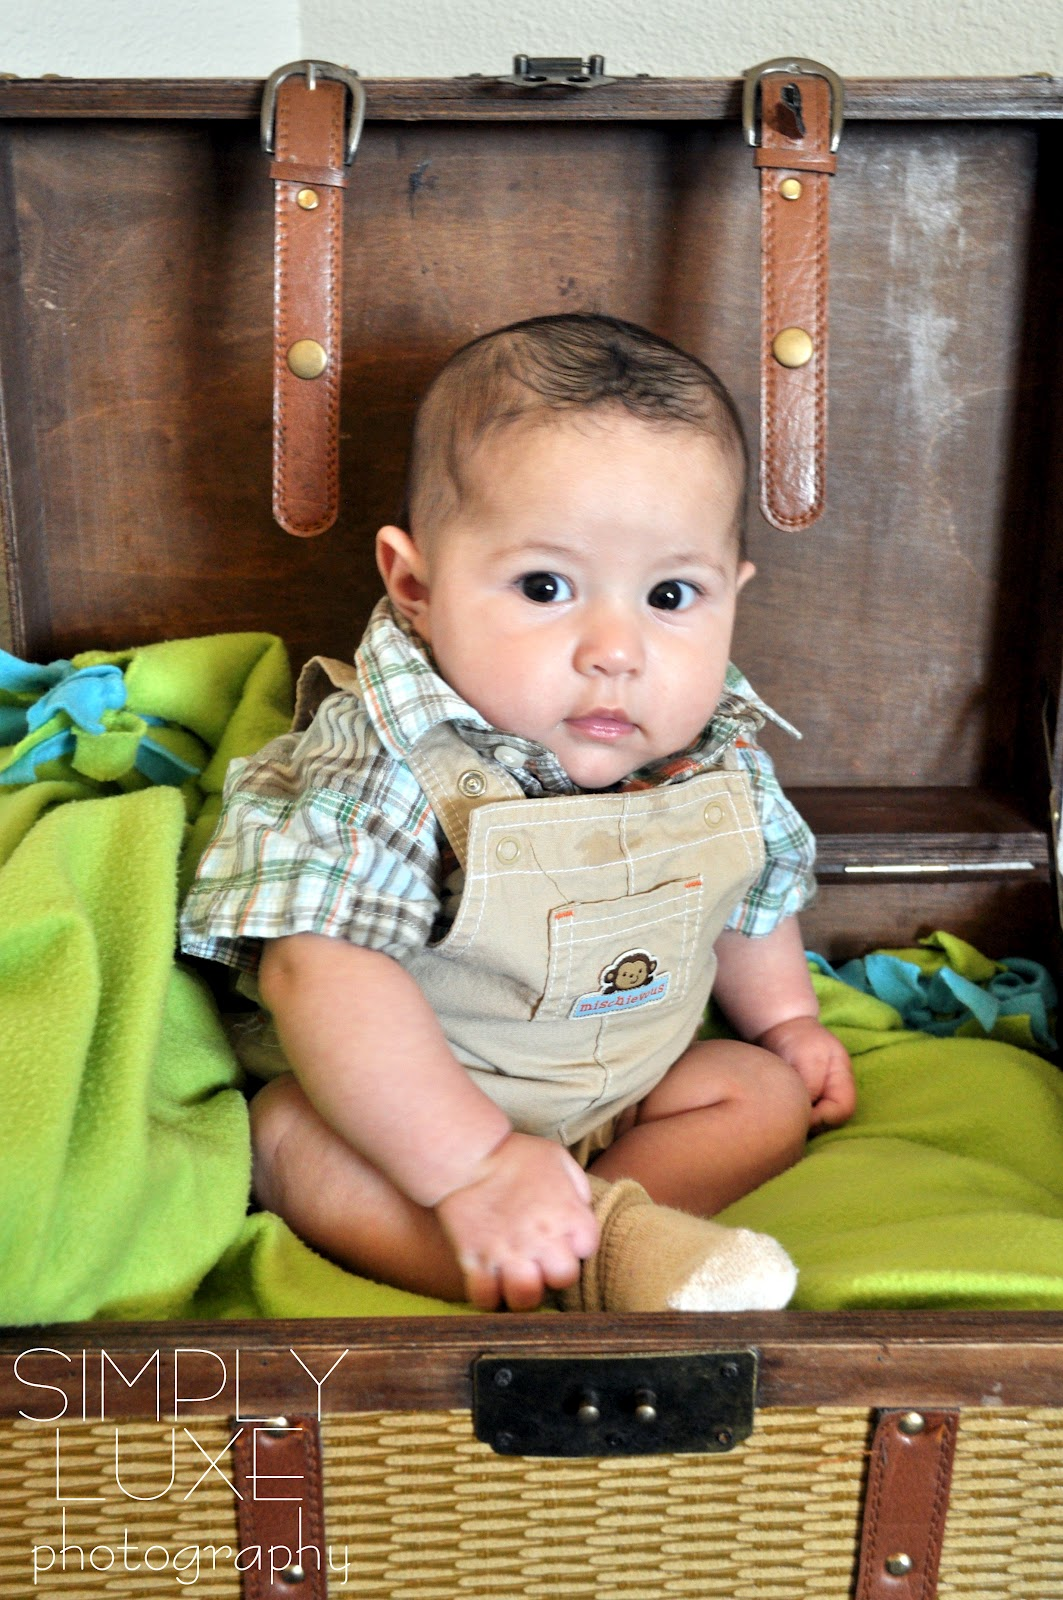 d1a94f3bd Simply LUXE Photography   3 month old Baby Boy photoshoot